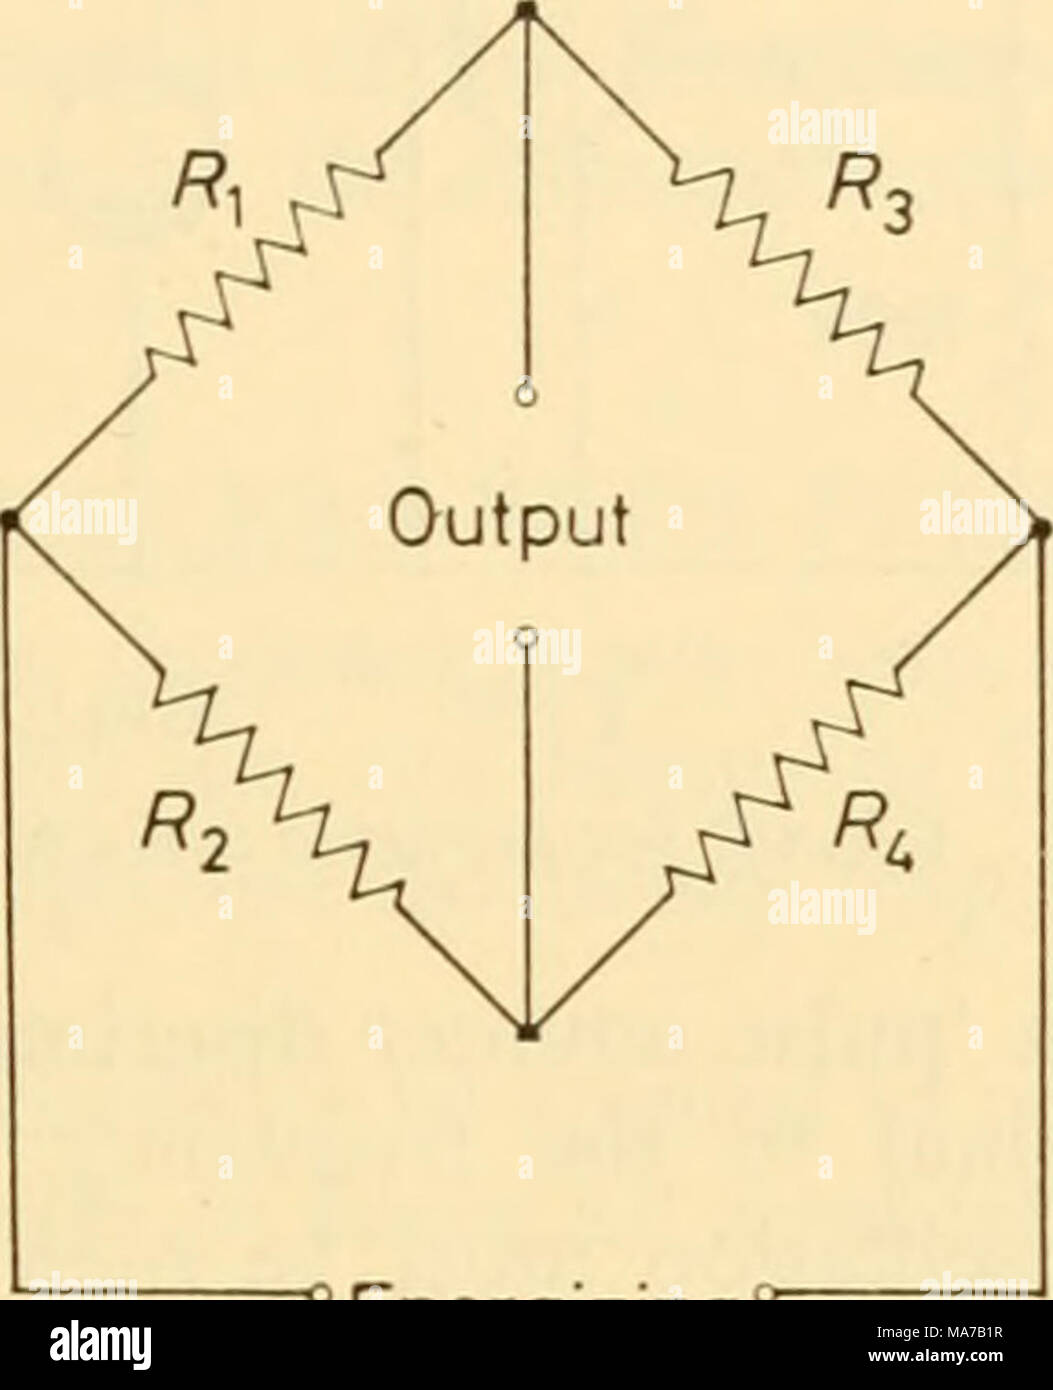 Electronic Apparatus For Biological Research Energizing Circuit As Shown In Fig This Can Be A Voltage Signal Figure 3334 Wheatstone Bridge Phase With Each Other Simple Rectification Distinction Disappears